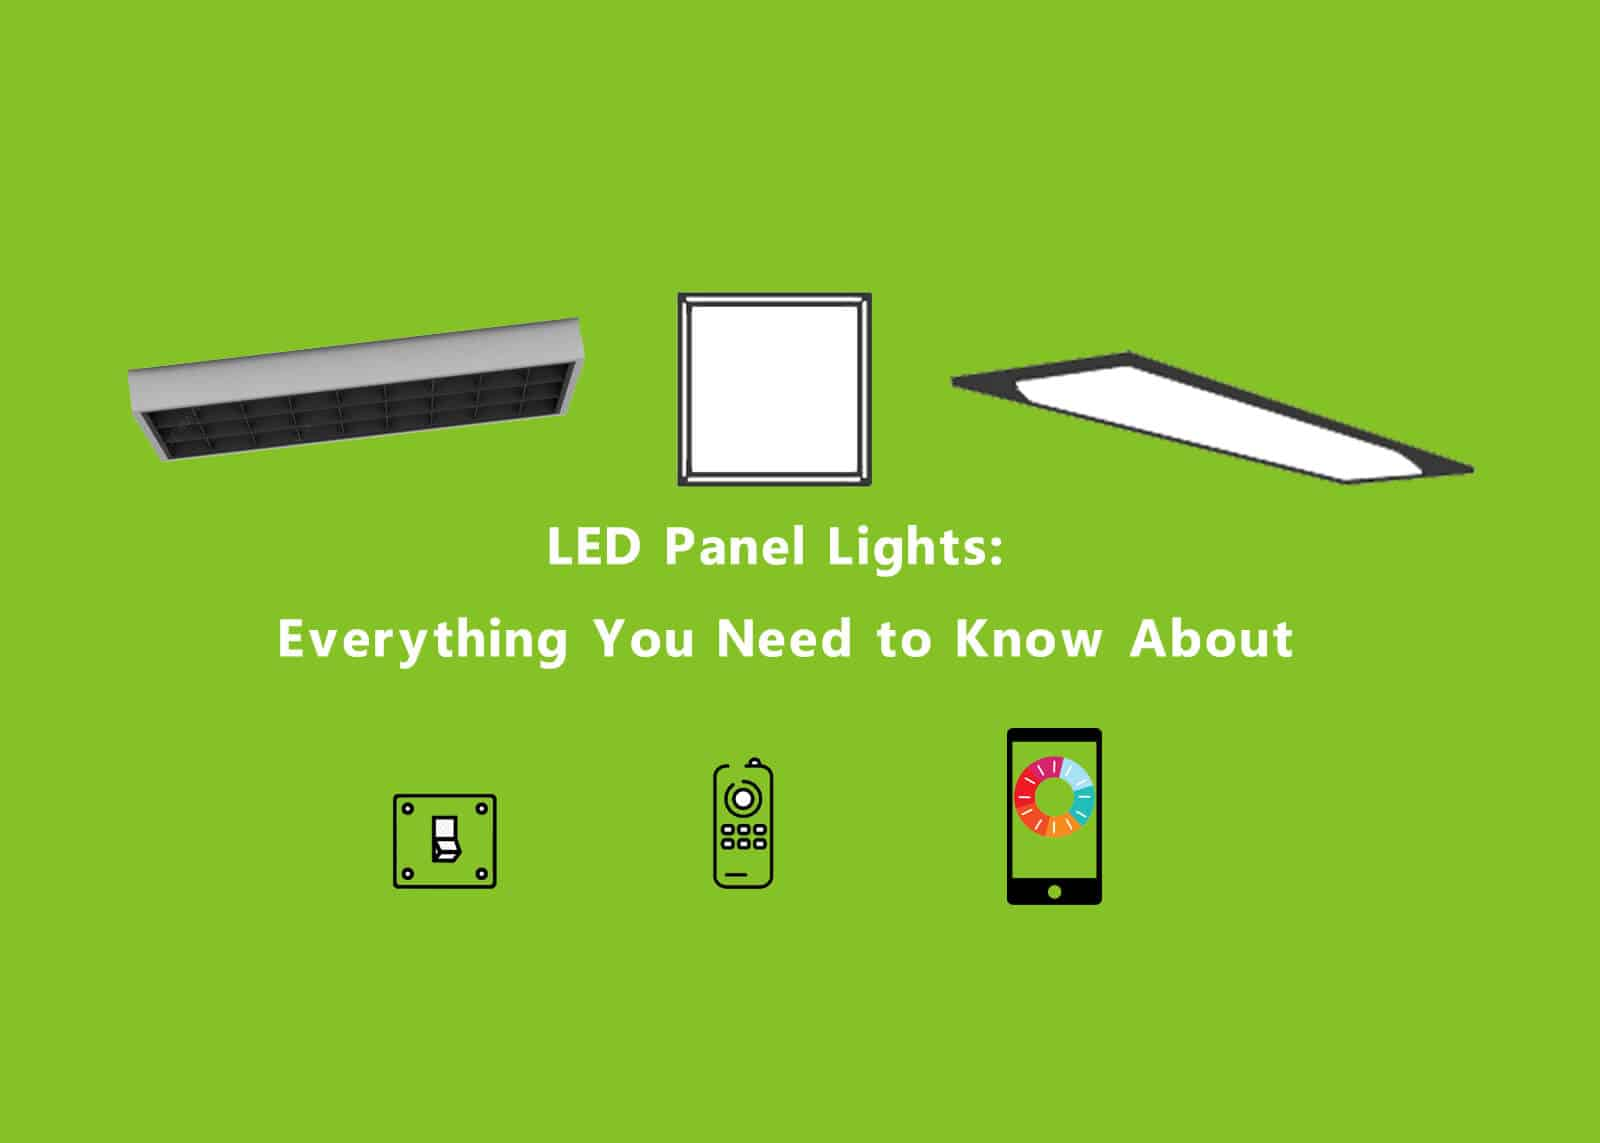 LED Panel Lights Feature Image